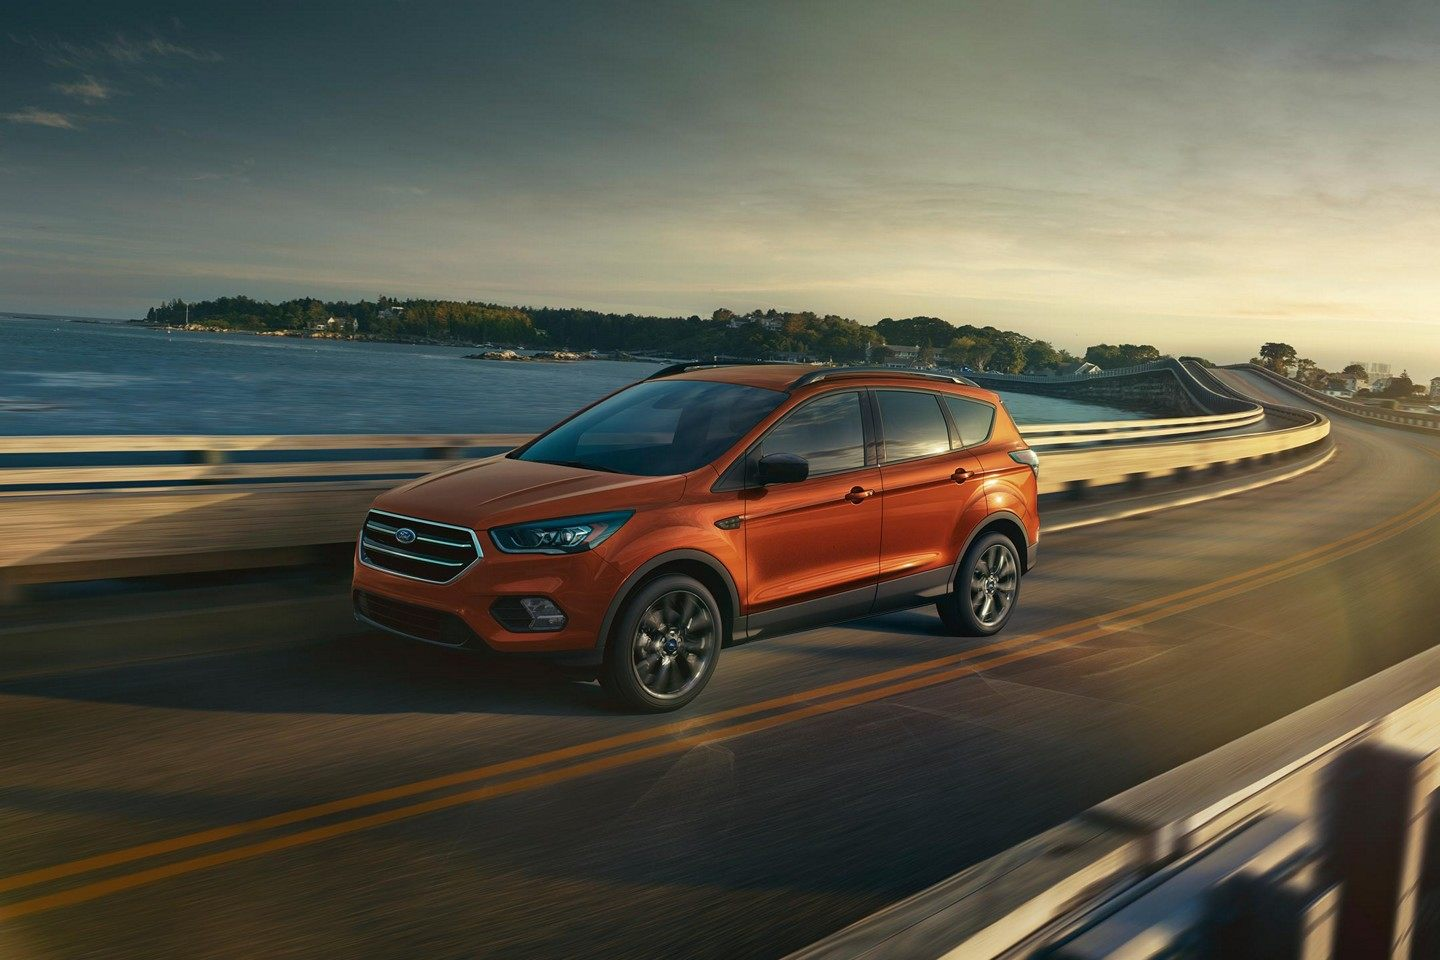 2019 Ford Escape Orange Exterior Side Picture